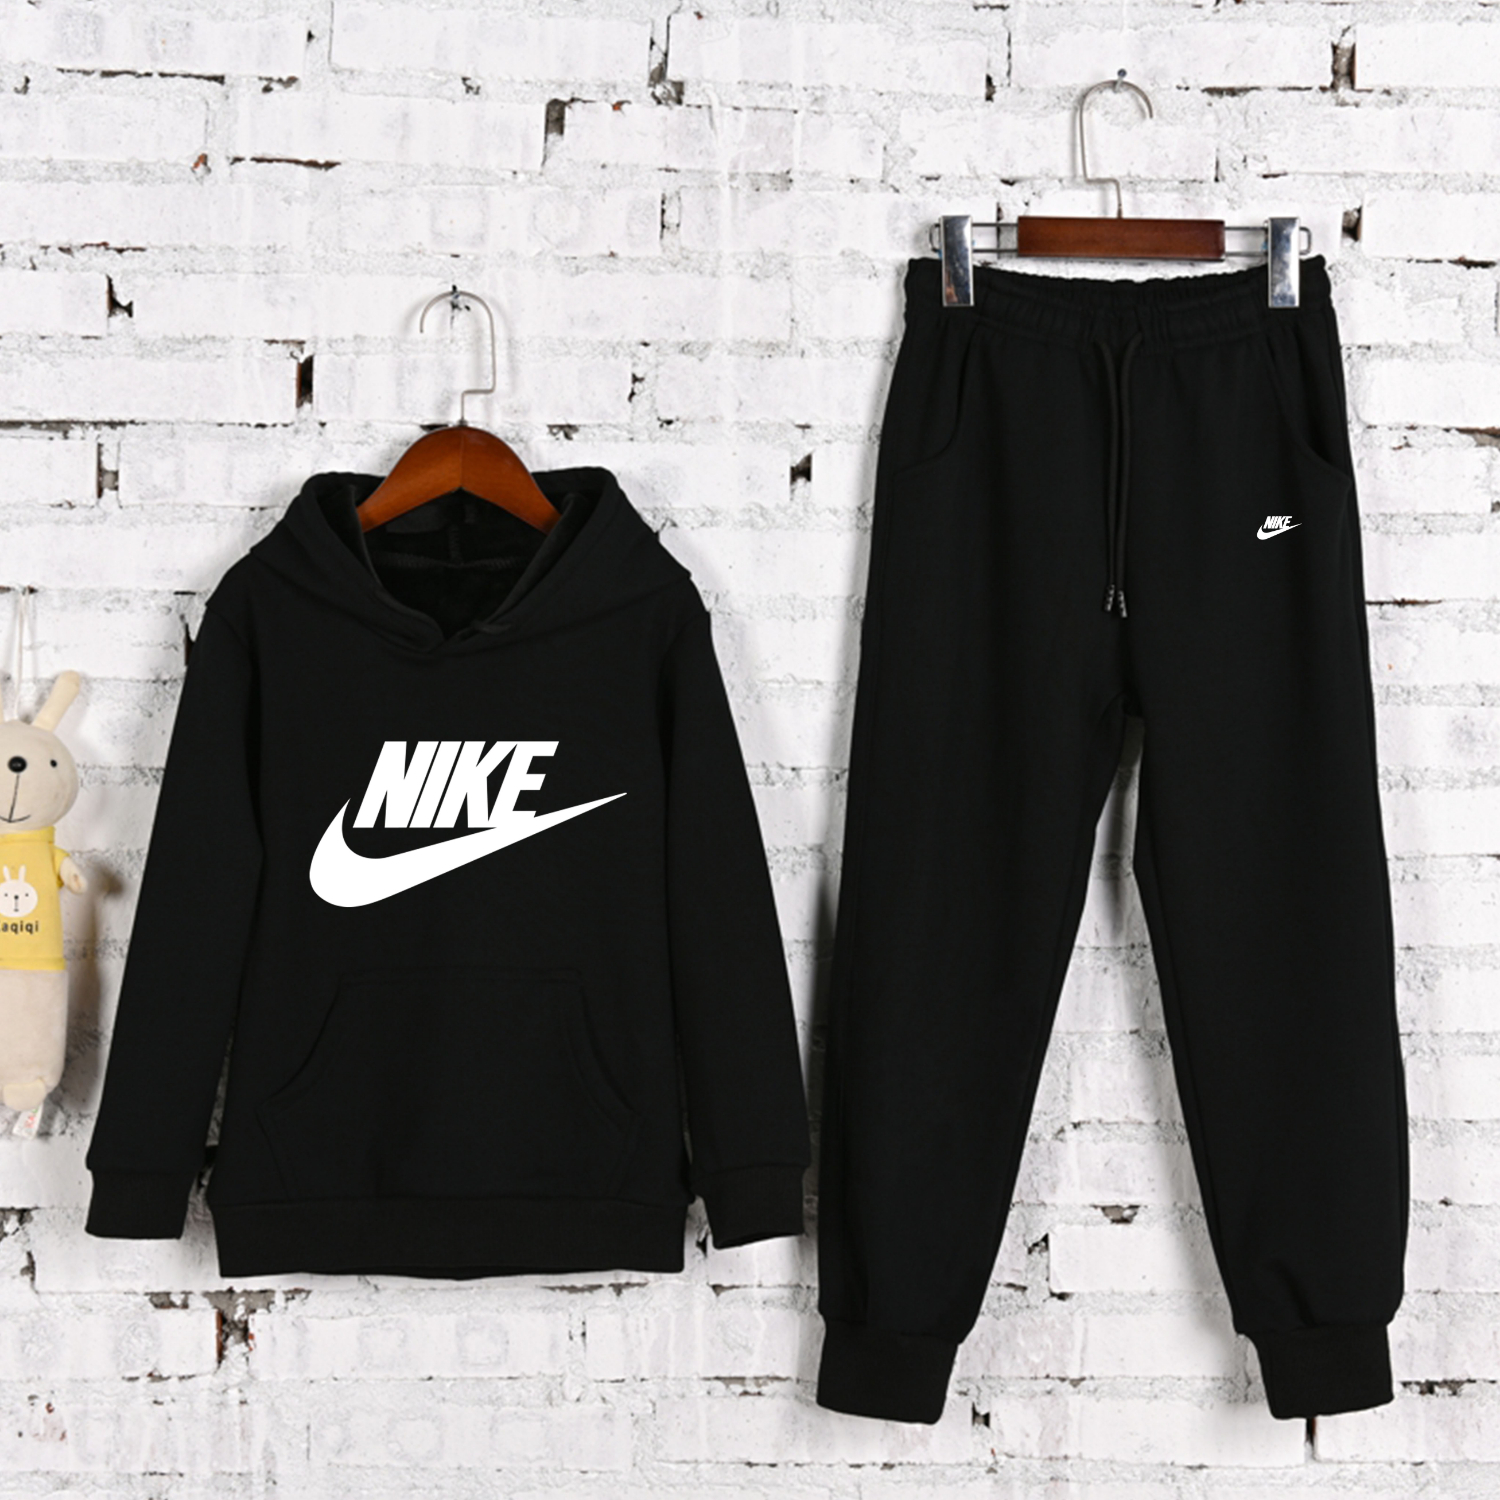 Nike New Winter Children Clothing Kids Cartoon Letter Casual Sports Tracksuits 2pcs/Set Infant Outfit Kids  Hoodies